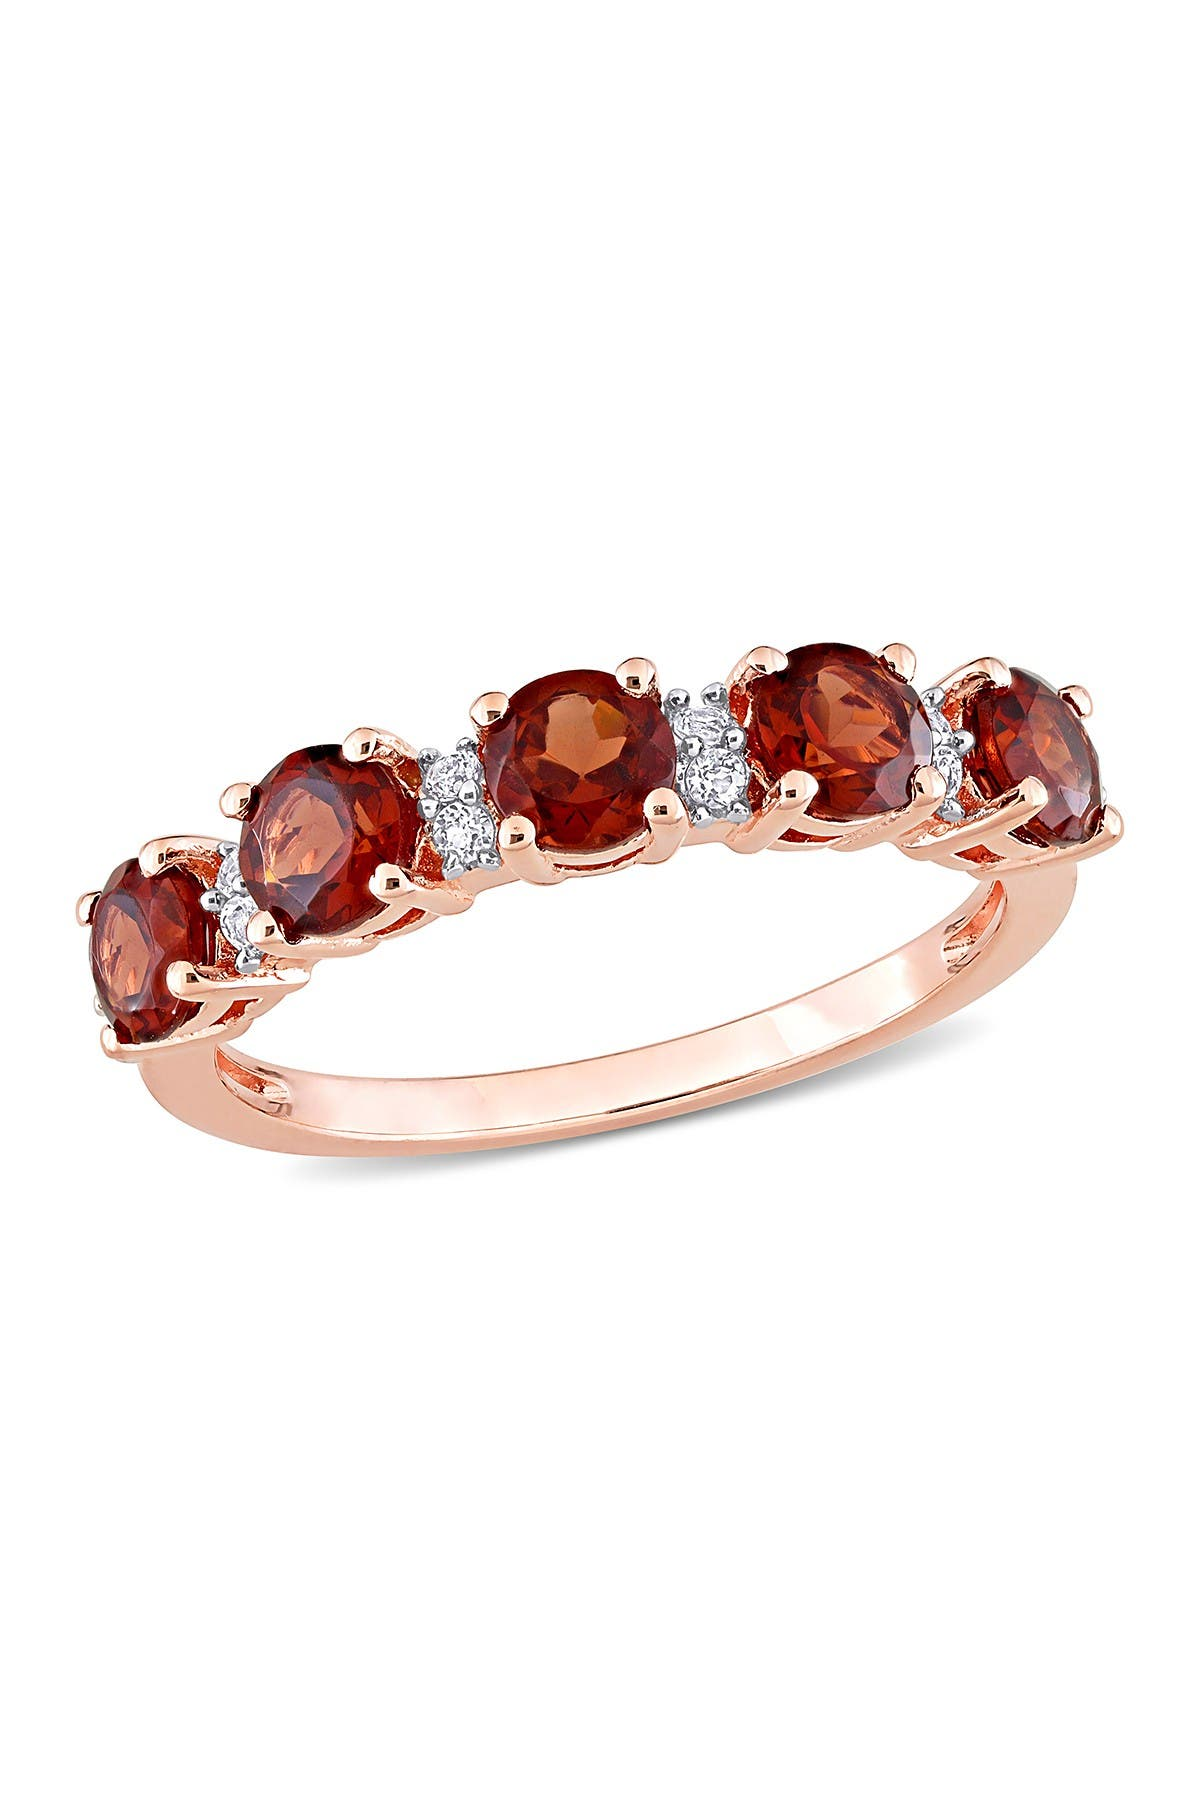 Image of Delmar 18K Rose Gold Plated Sterling Silver Circle Cut Garnet & White Topaz Eternity Ring